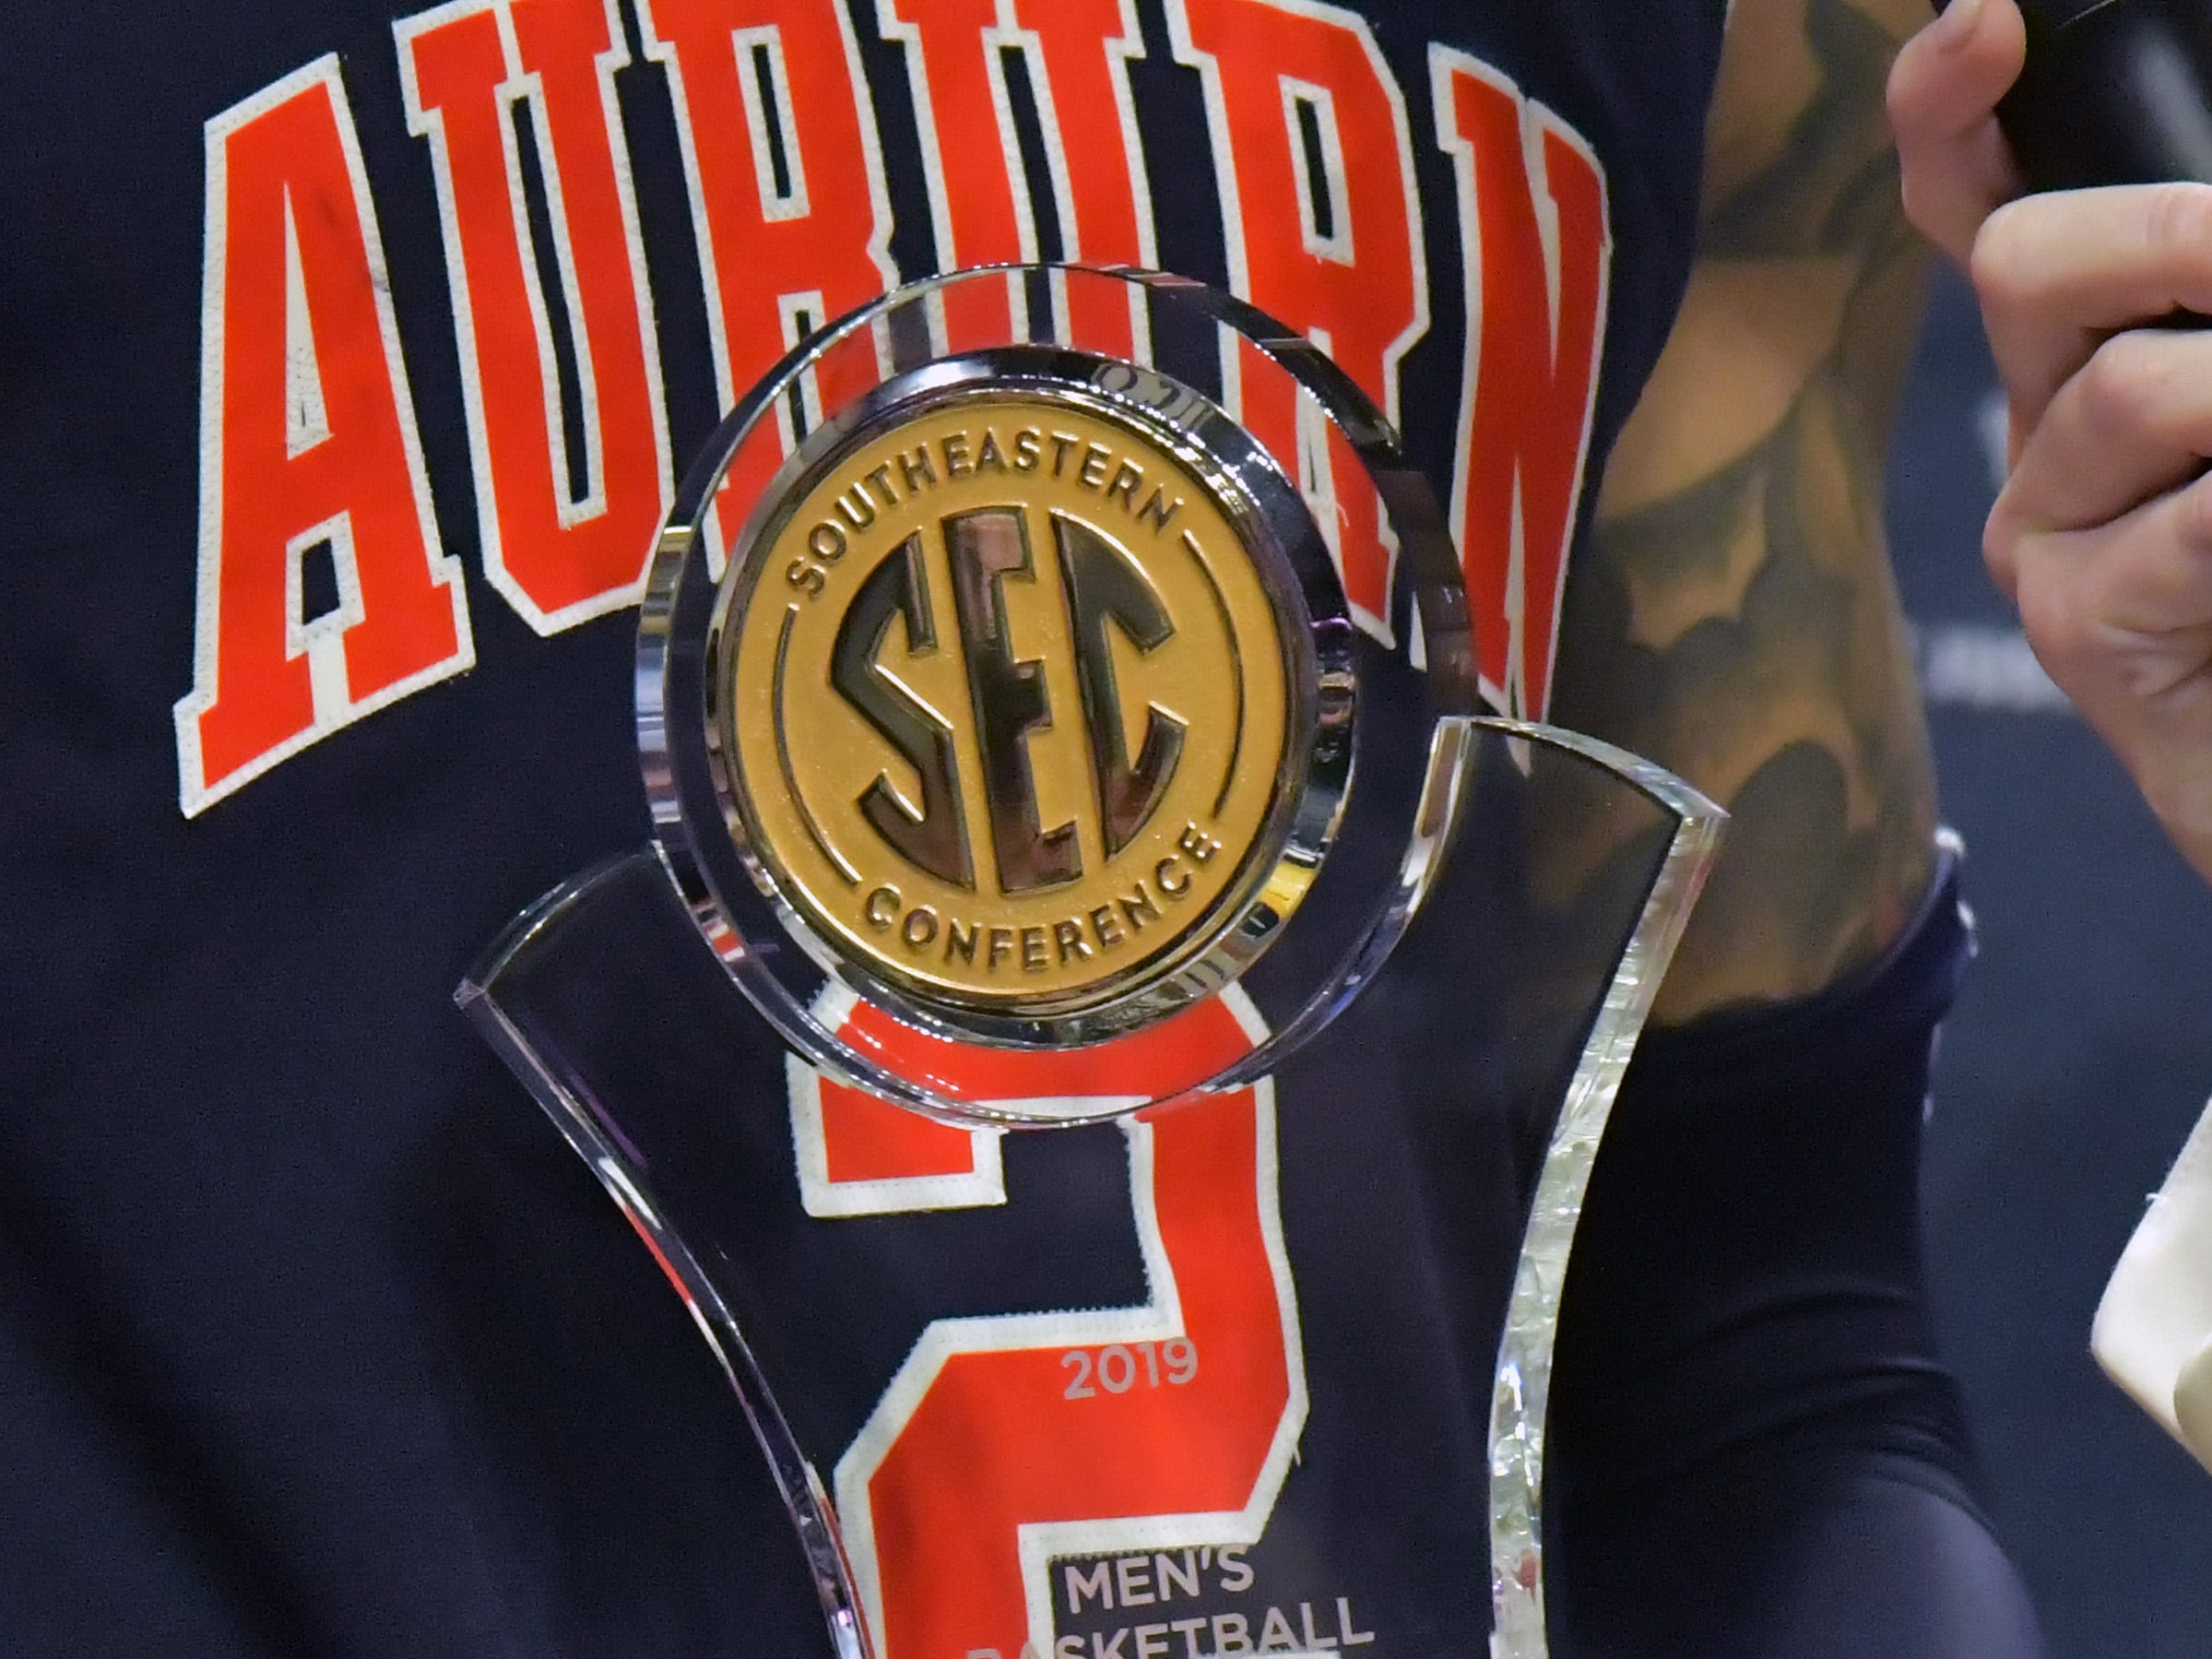 Mar 17, 2019; Nashville, TN, USA; Auburn Tigers guard Bryce Brown (2) holds the Most Valuable Player award following the championship game between the Tennessee Volunteers and the Auburn Tigers  in the SEC conference tournament at Bridgestone Arena. Auburn won 84-64. Mandatory Credit: Jim Brown-USA TODAY Sports